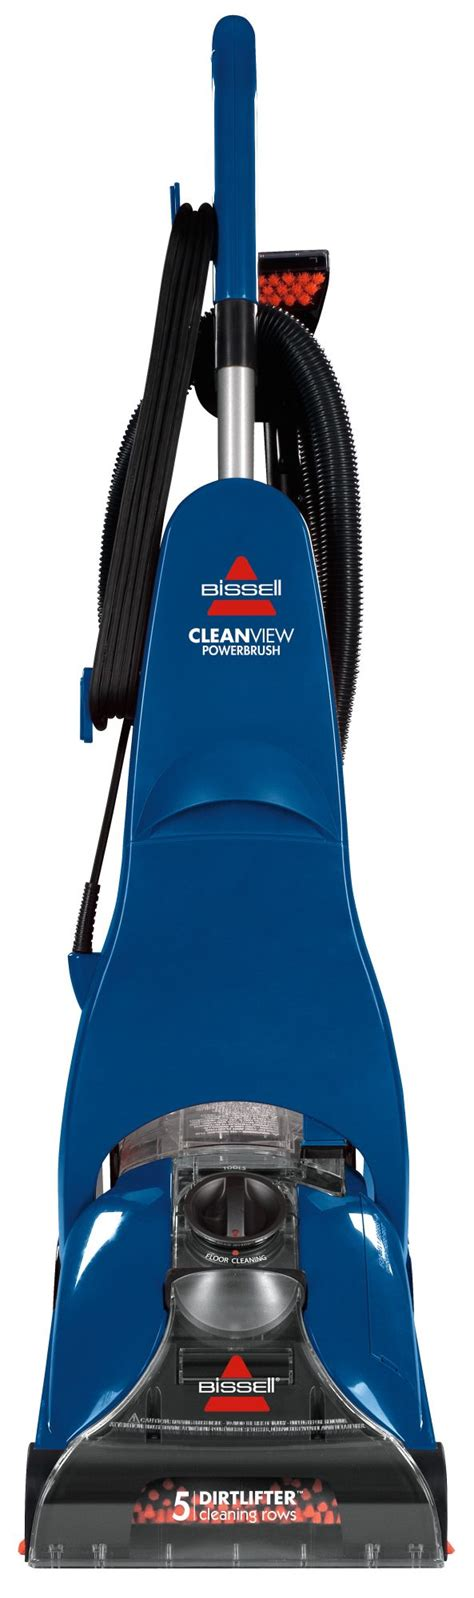 cleanview powerbrush ef upright carpet washer